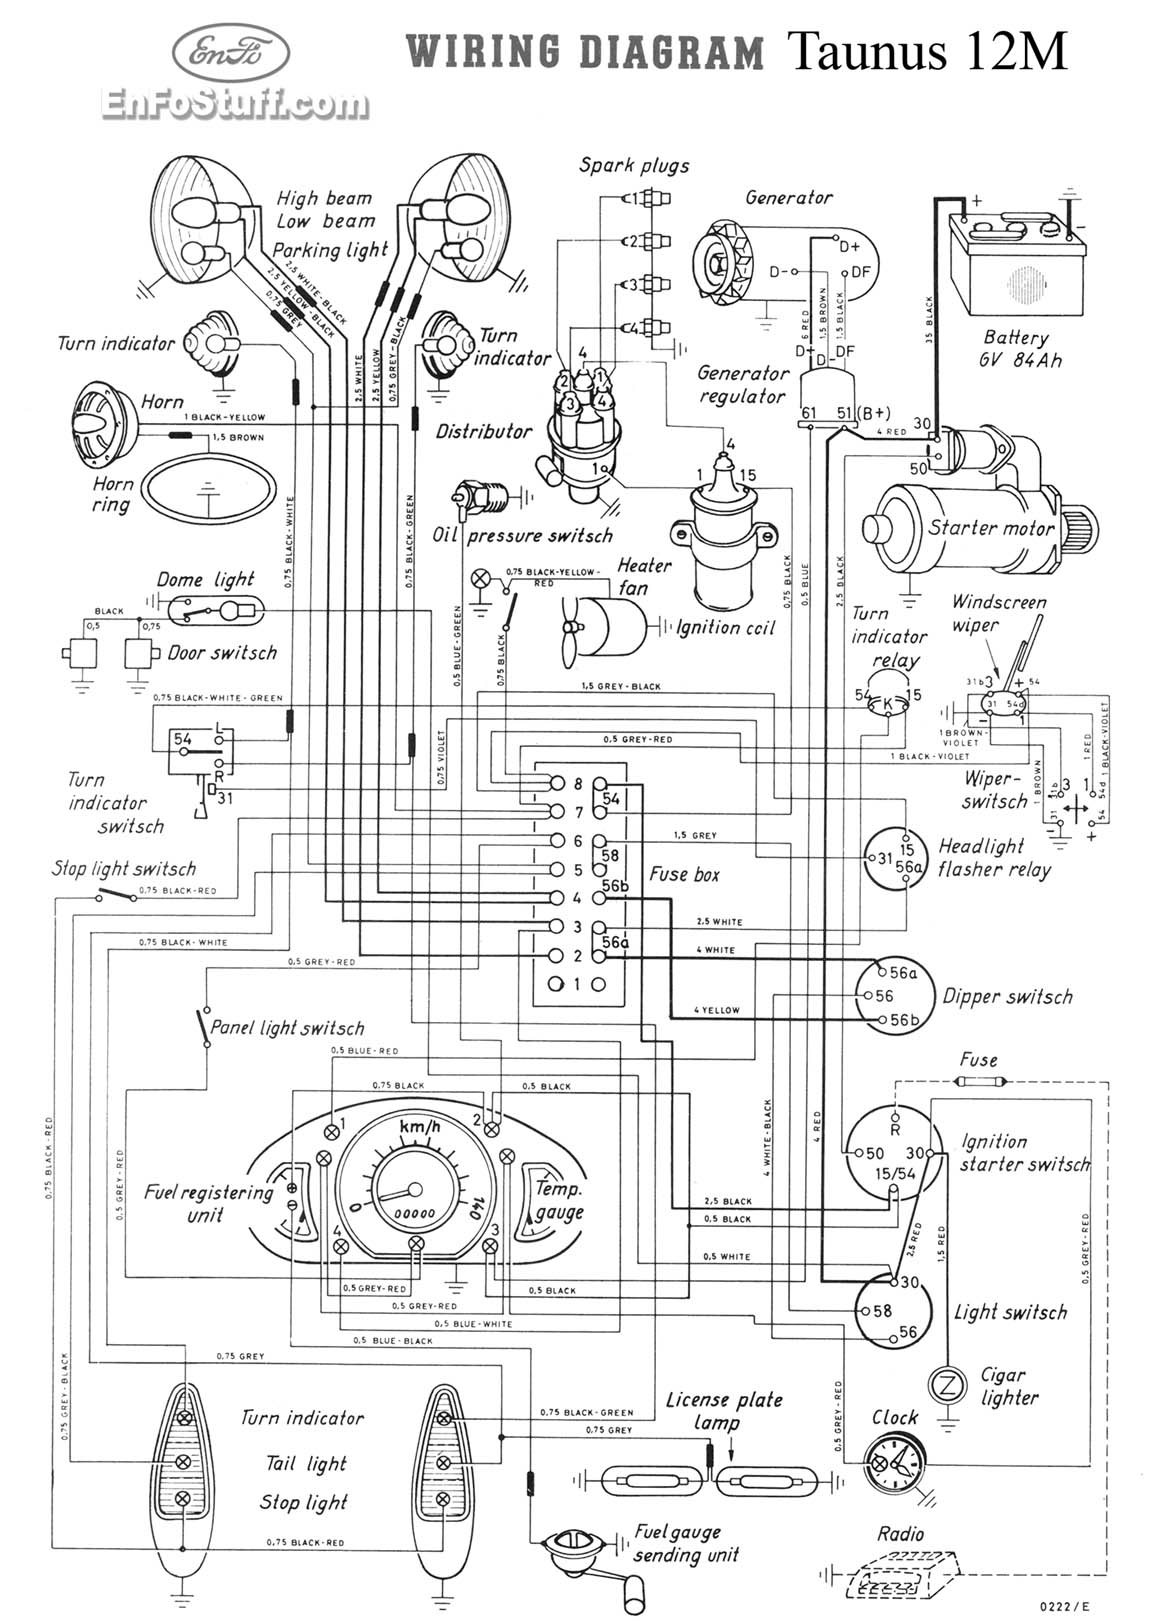 vw golf mk1 wiring diagram pdf